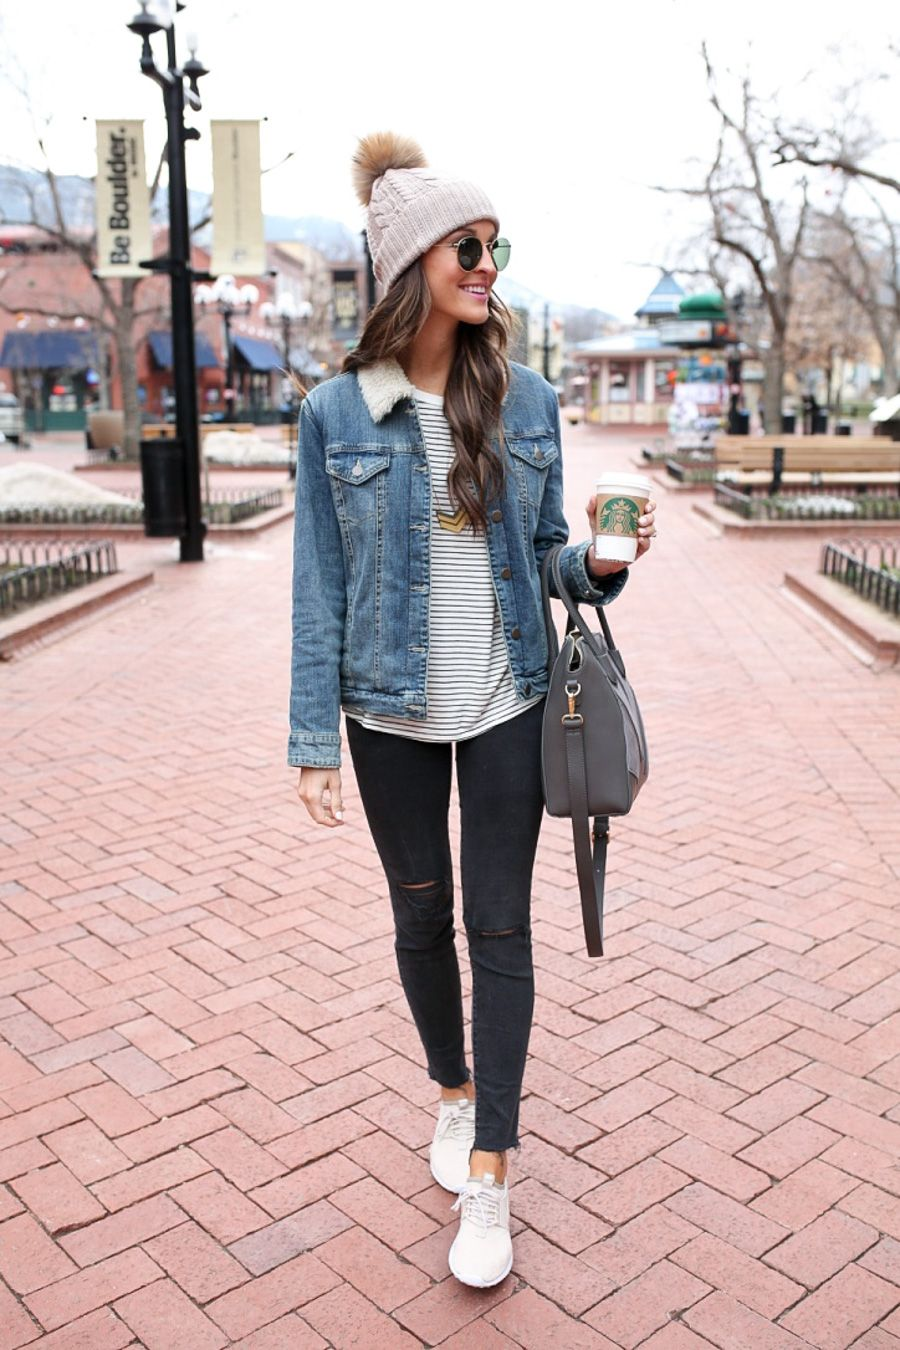 Sneaker girl all day everyday | laurenkaysims.com | Pinterest | Winter fashion Winter outfits ...